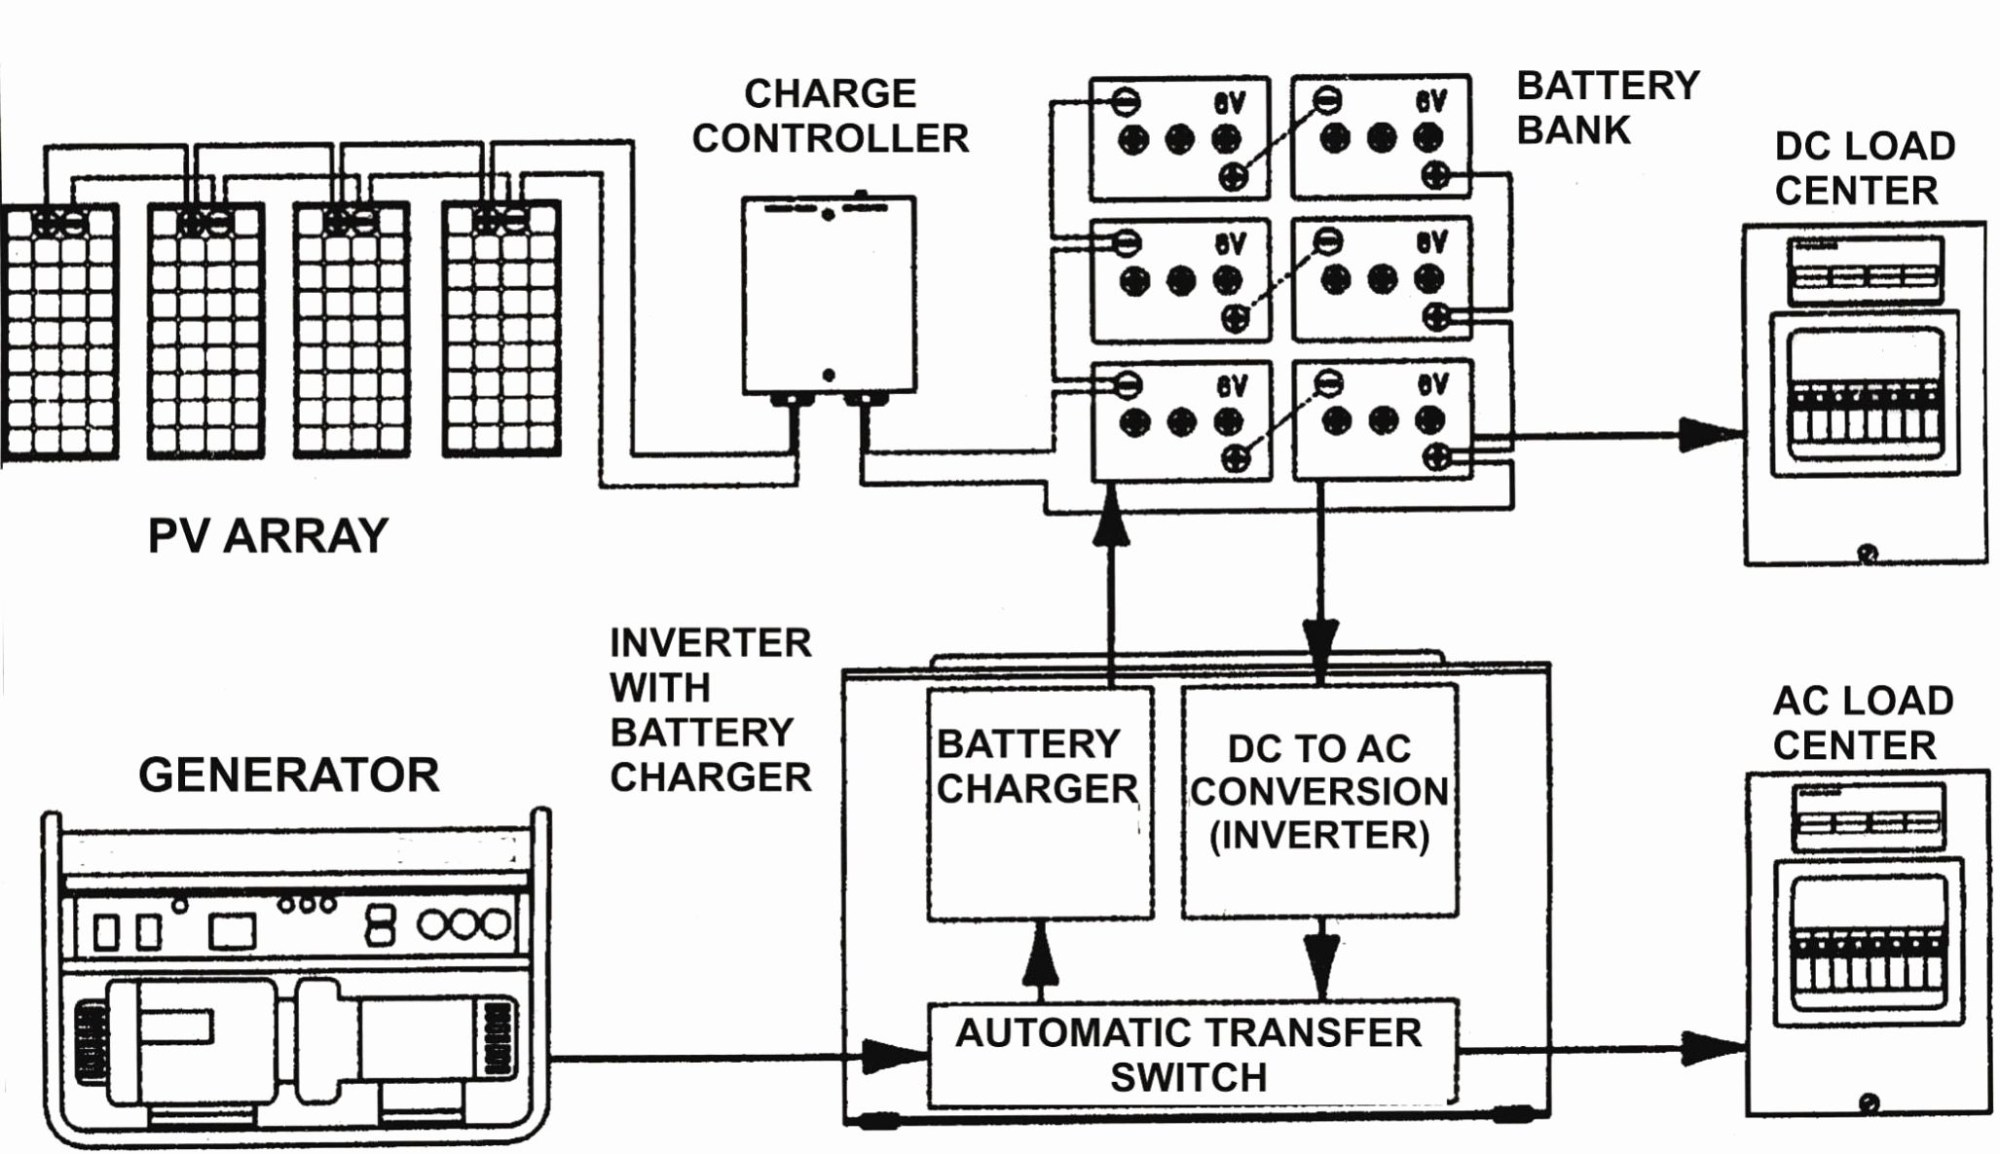 hight resolution of rv transfer switch wiring diagram manual e books rv inverter charger wiring diagram